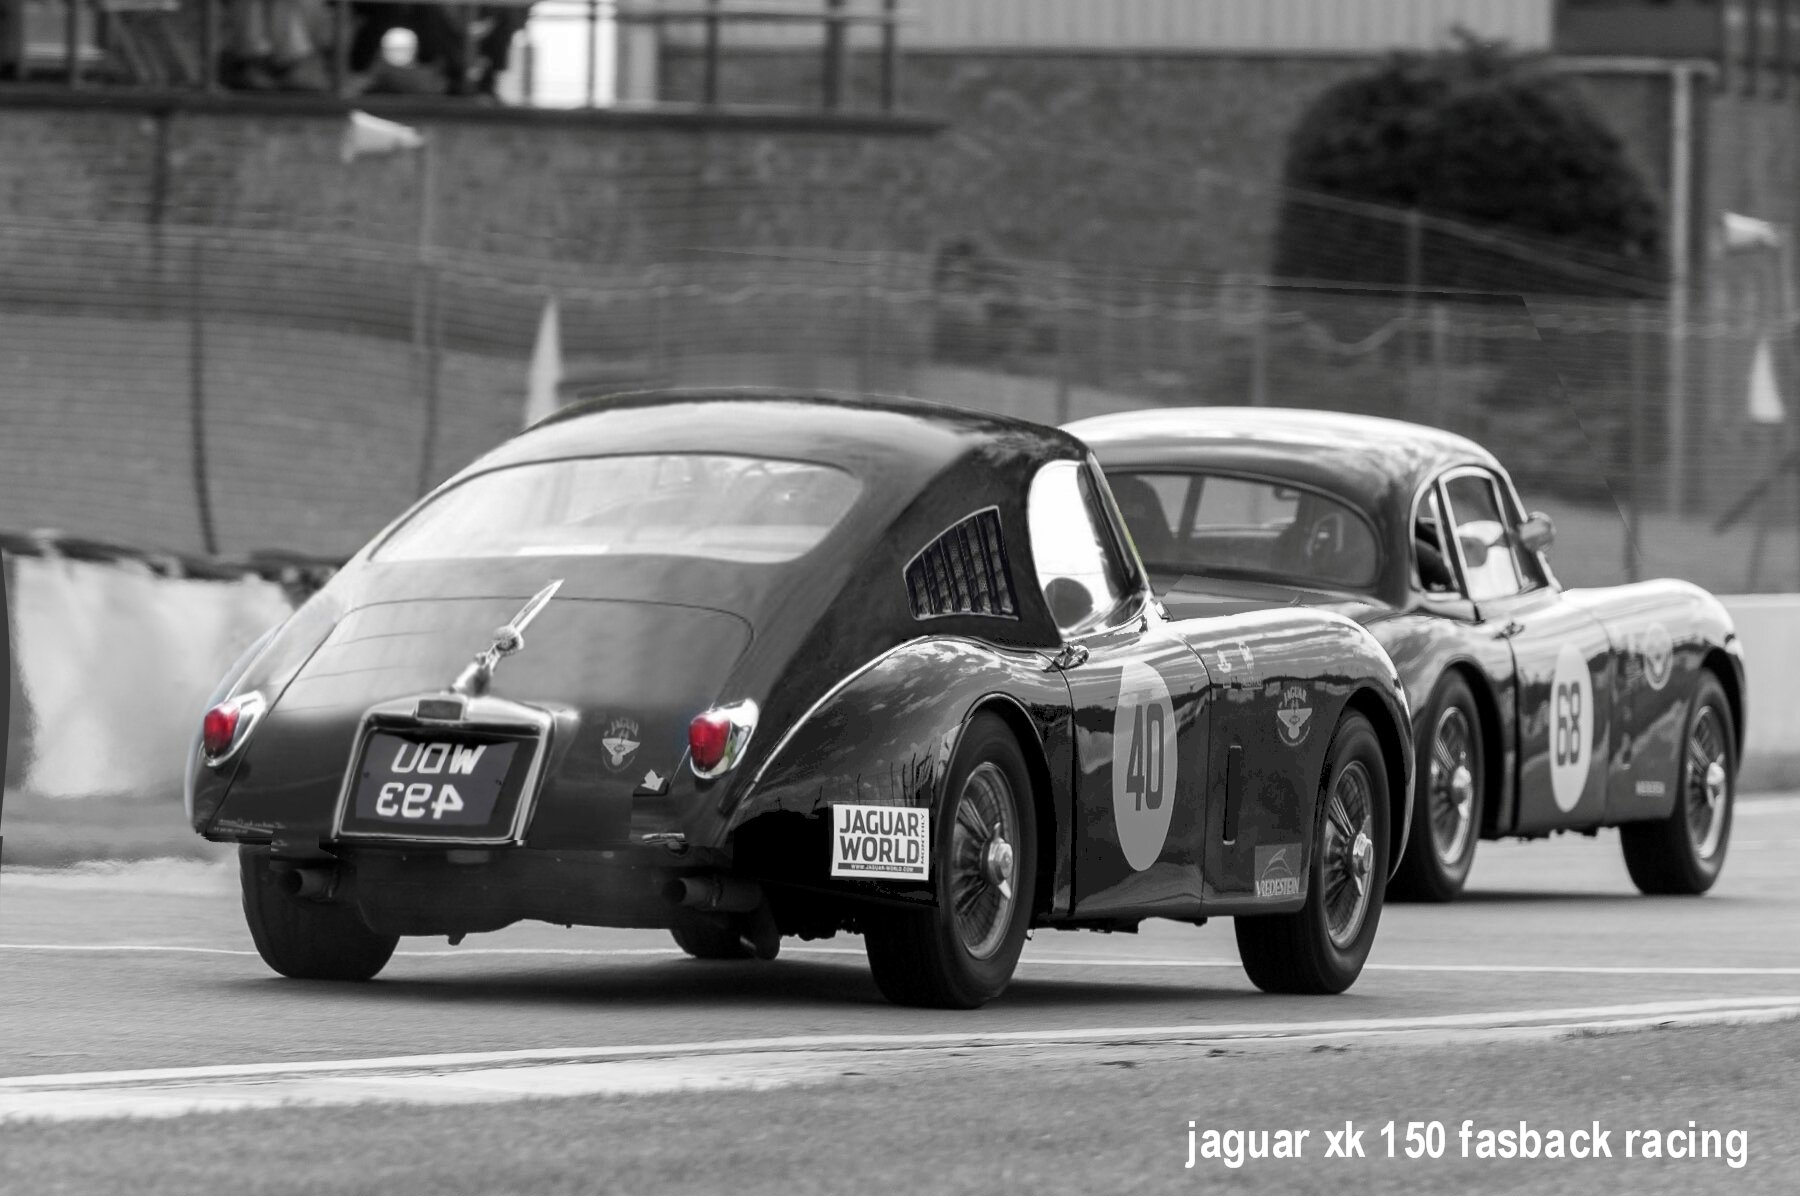 marc-gordon-jaguar xk 150,jaguar xk 150 roadster,jaguar xk 150 ots,jaguar xk,decatoire